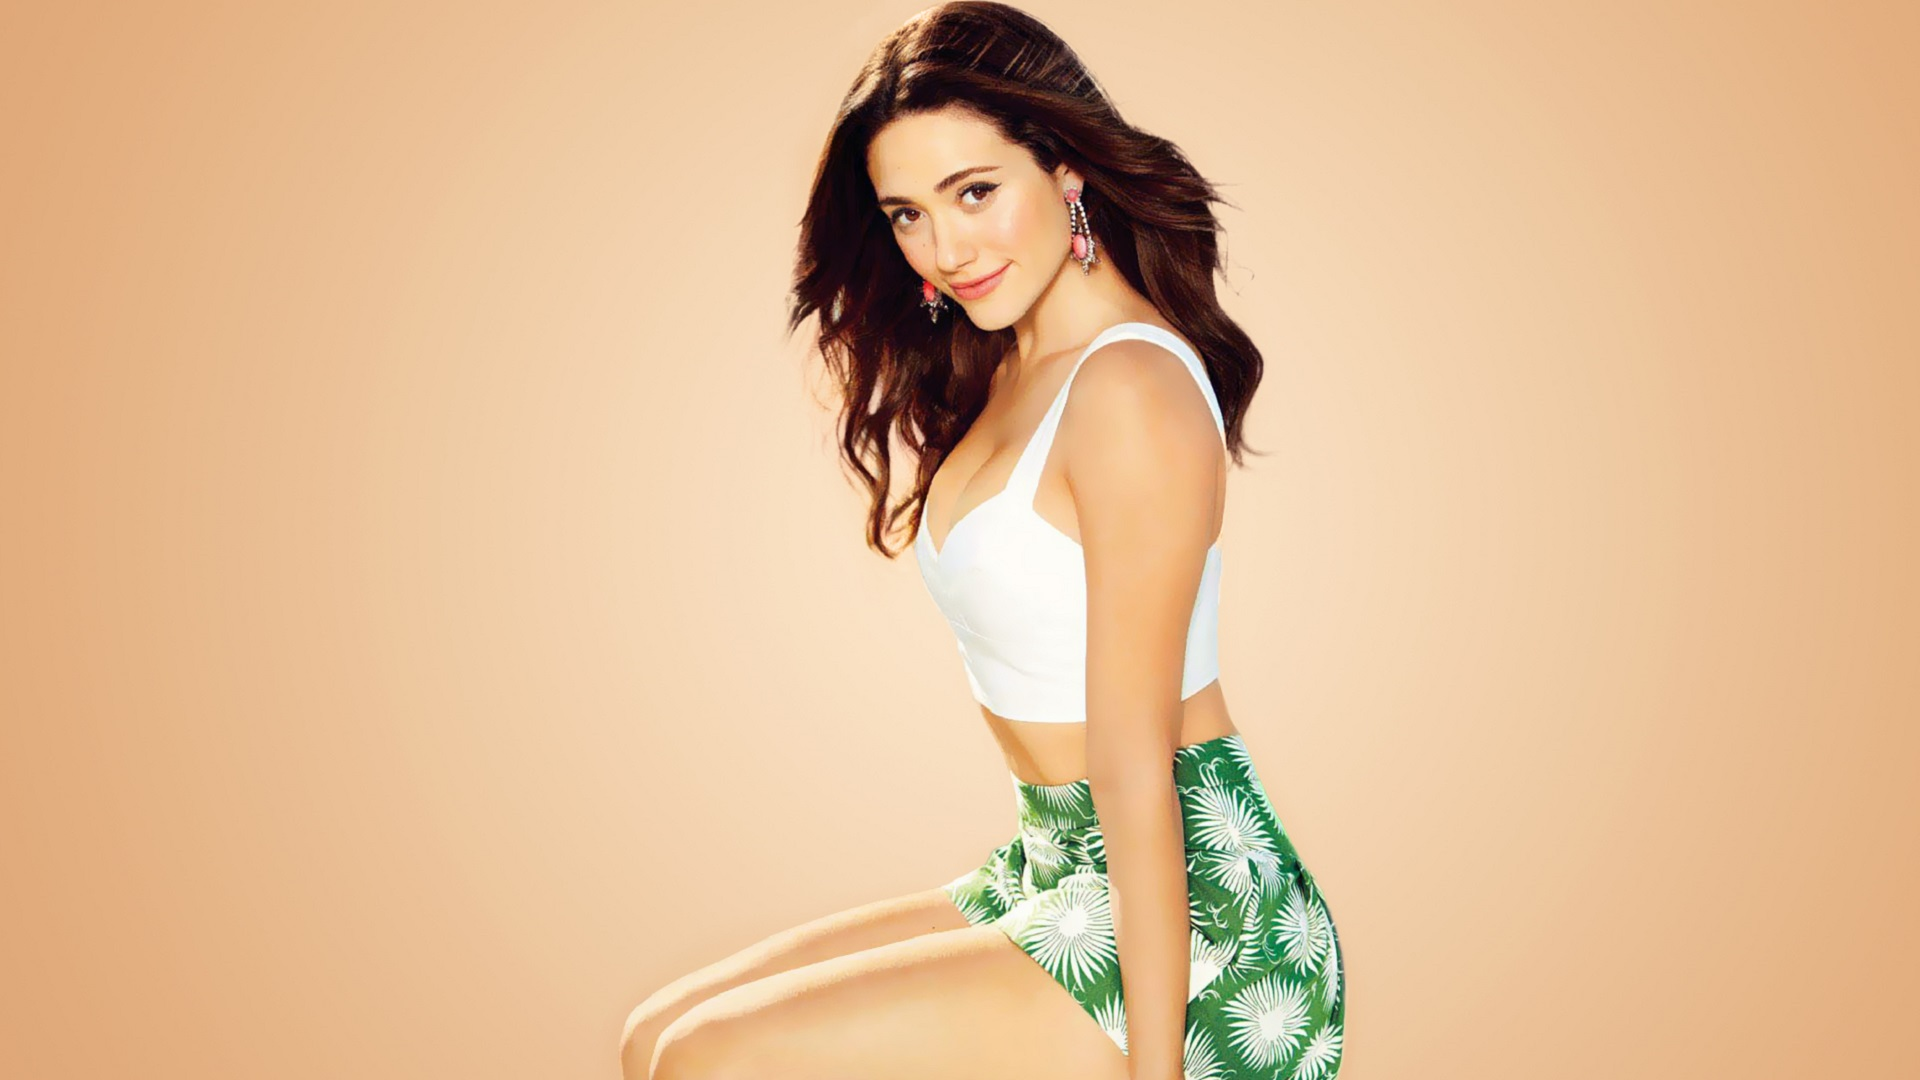 emmy rossum sublime wallpaper - photo #4